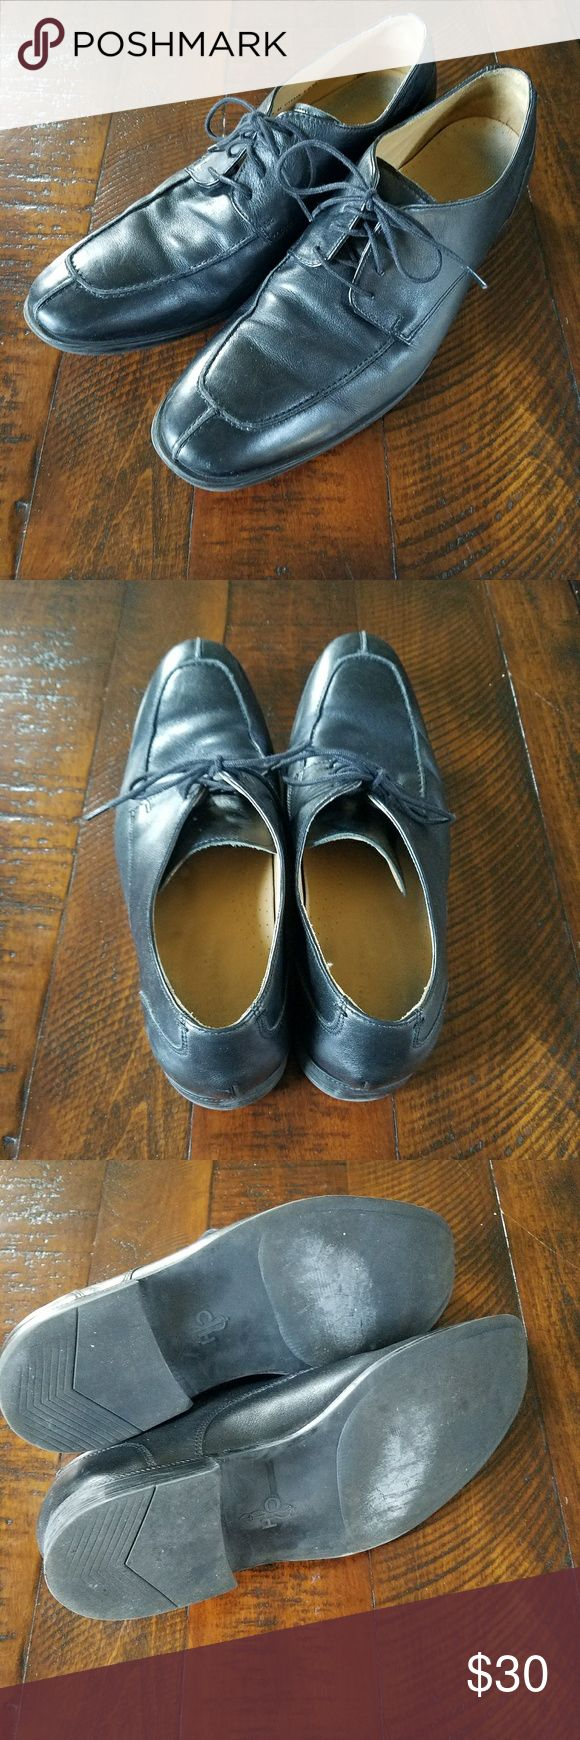 Men's Cole Haan Black Leather Dress Shoes Men's black leather Cole Haan dress shoes.  Great condition and plenty of life left.  High quality, super soft leather and very comfortable. Cole Haan Shoes Oxfords & Derbys